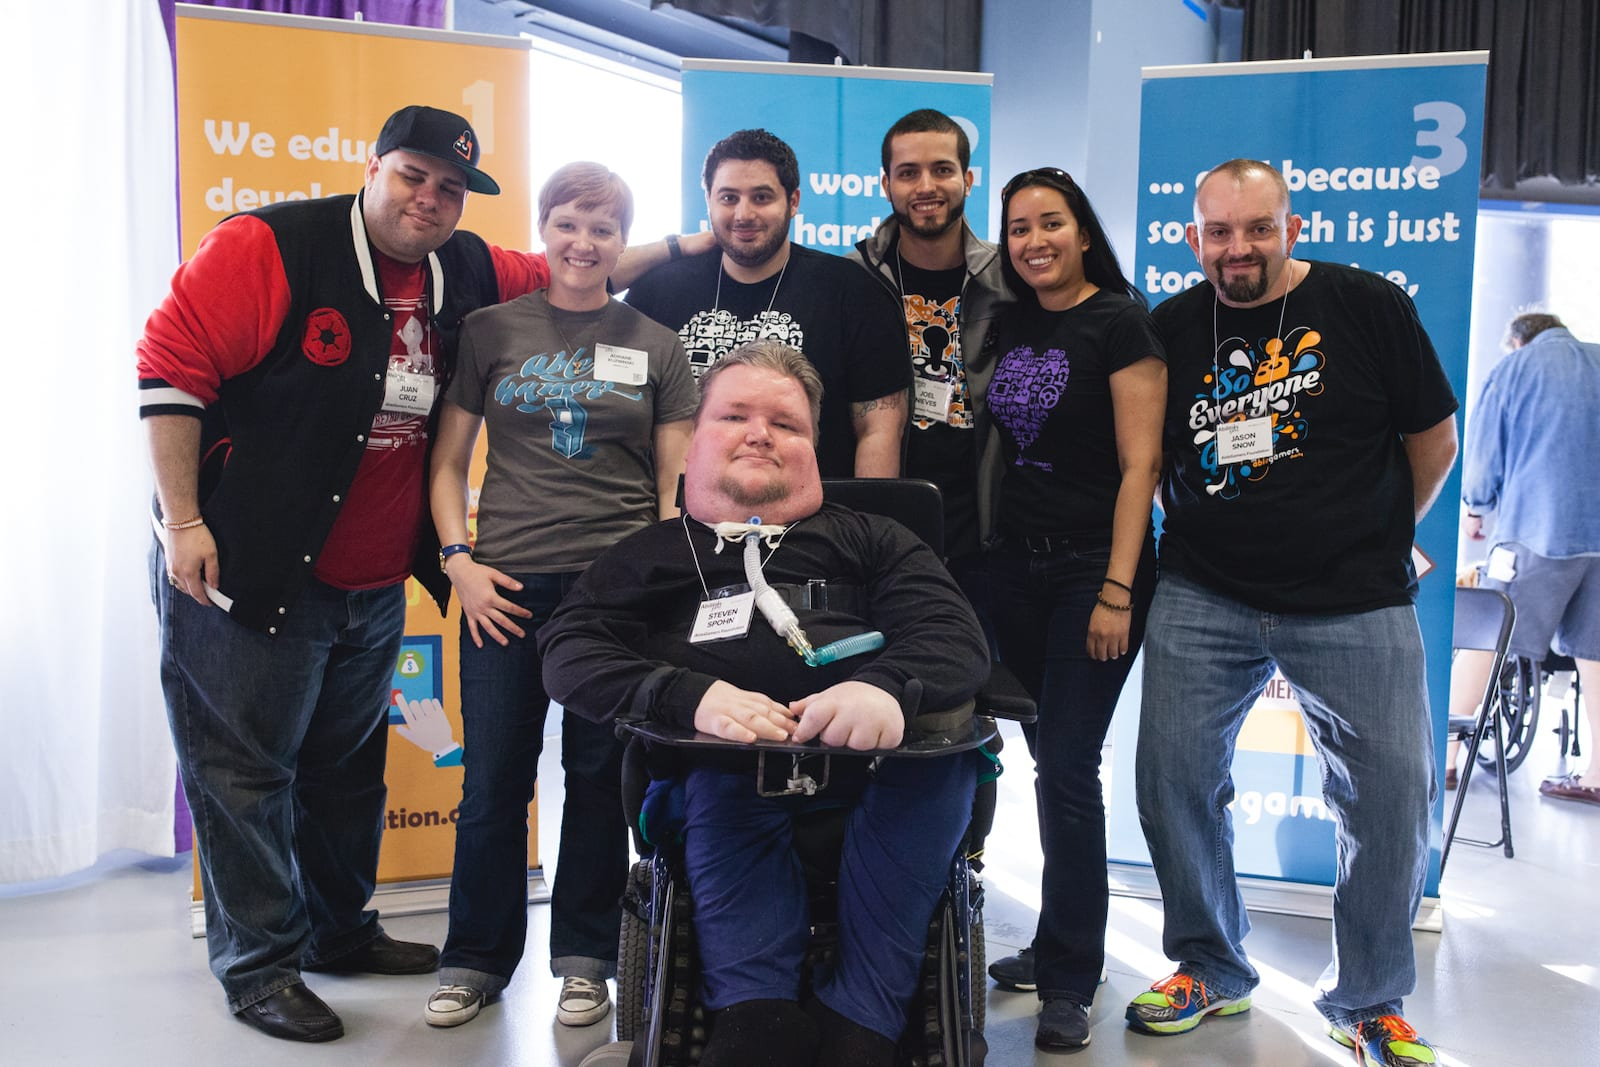 AbleGamers at the NY Abilities Expo 2015